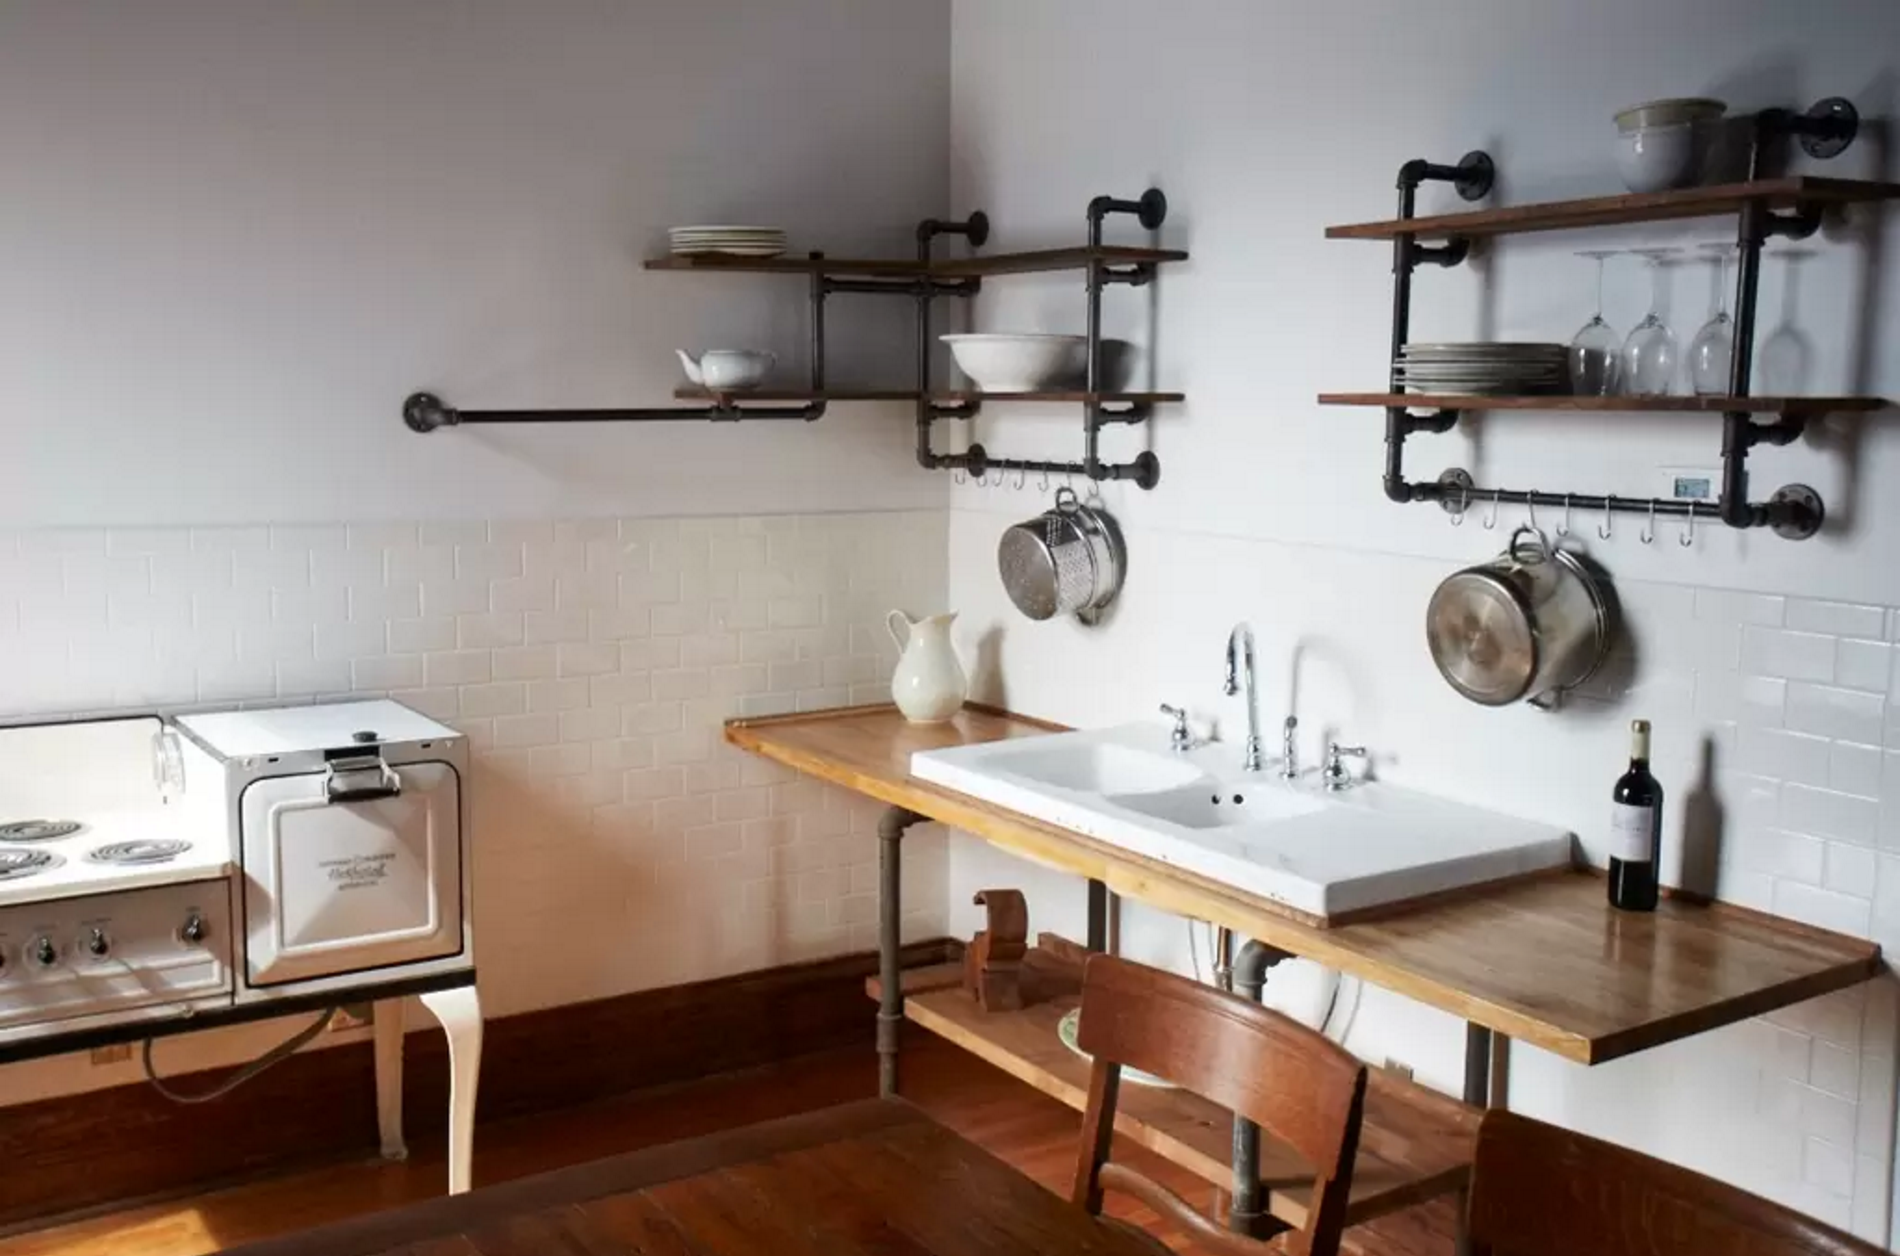 Steal This Look Hudson Milliner Kitchen in New York hudson milliner steal this look remodelista 1